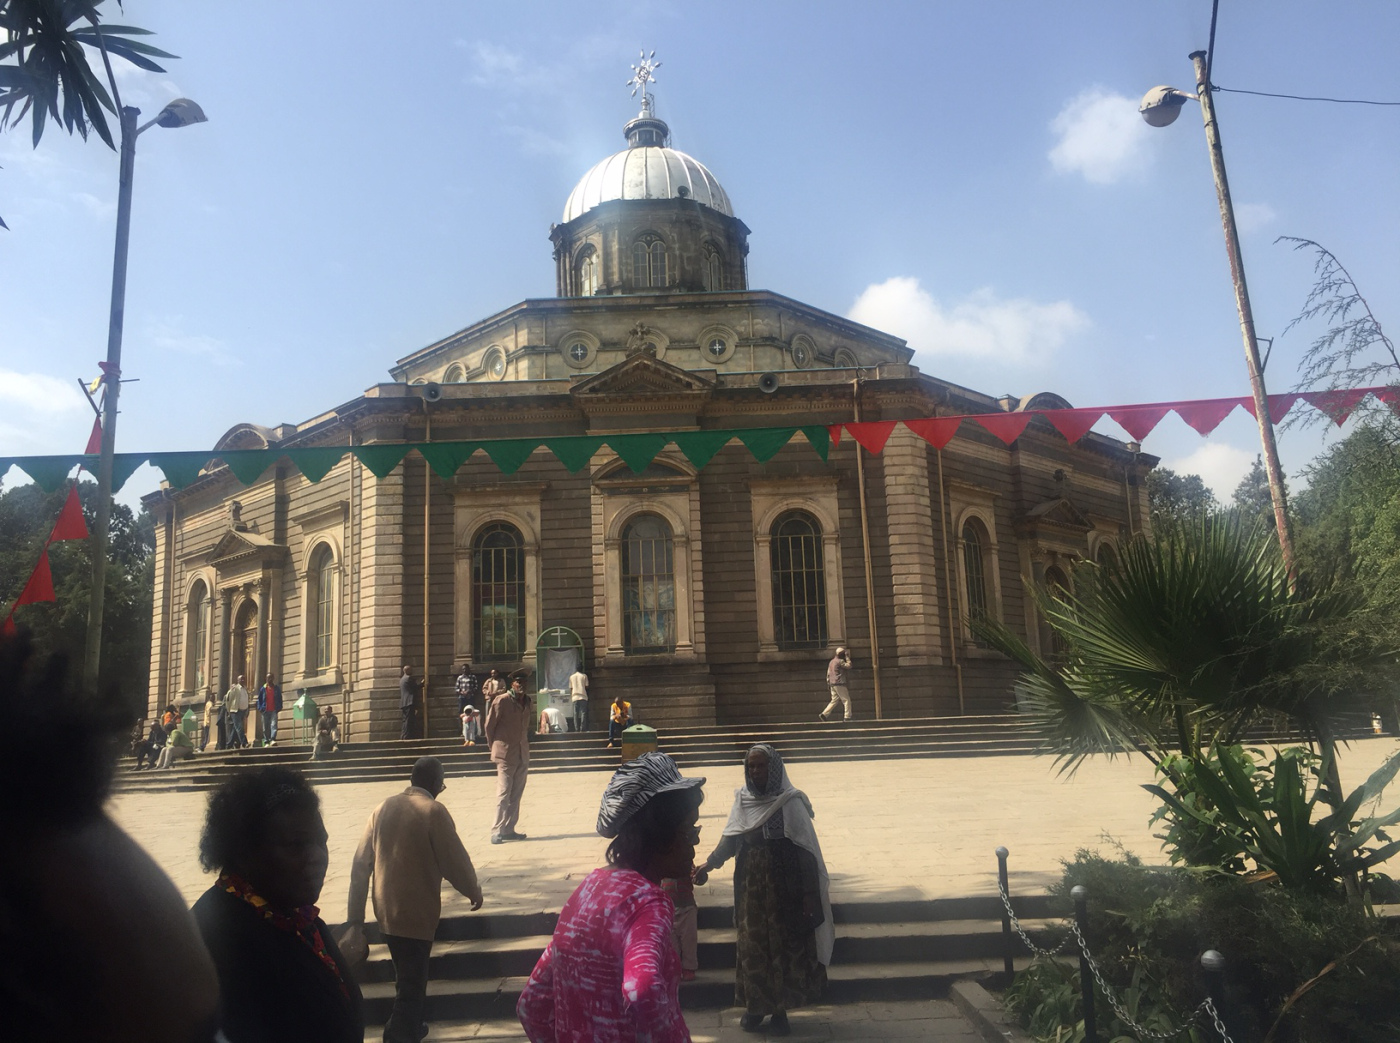 St George Cathedral & Museum Addis Ababa, Ethiopia Day 1: More Questions than Answers in My Search for Truth ...